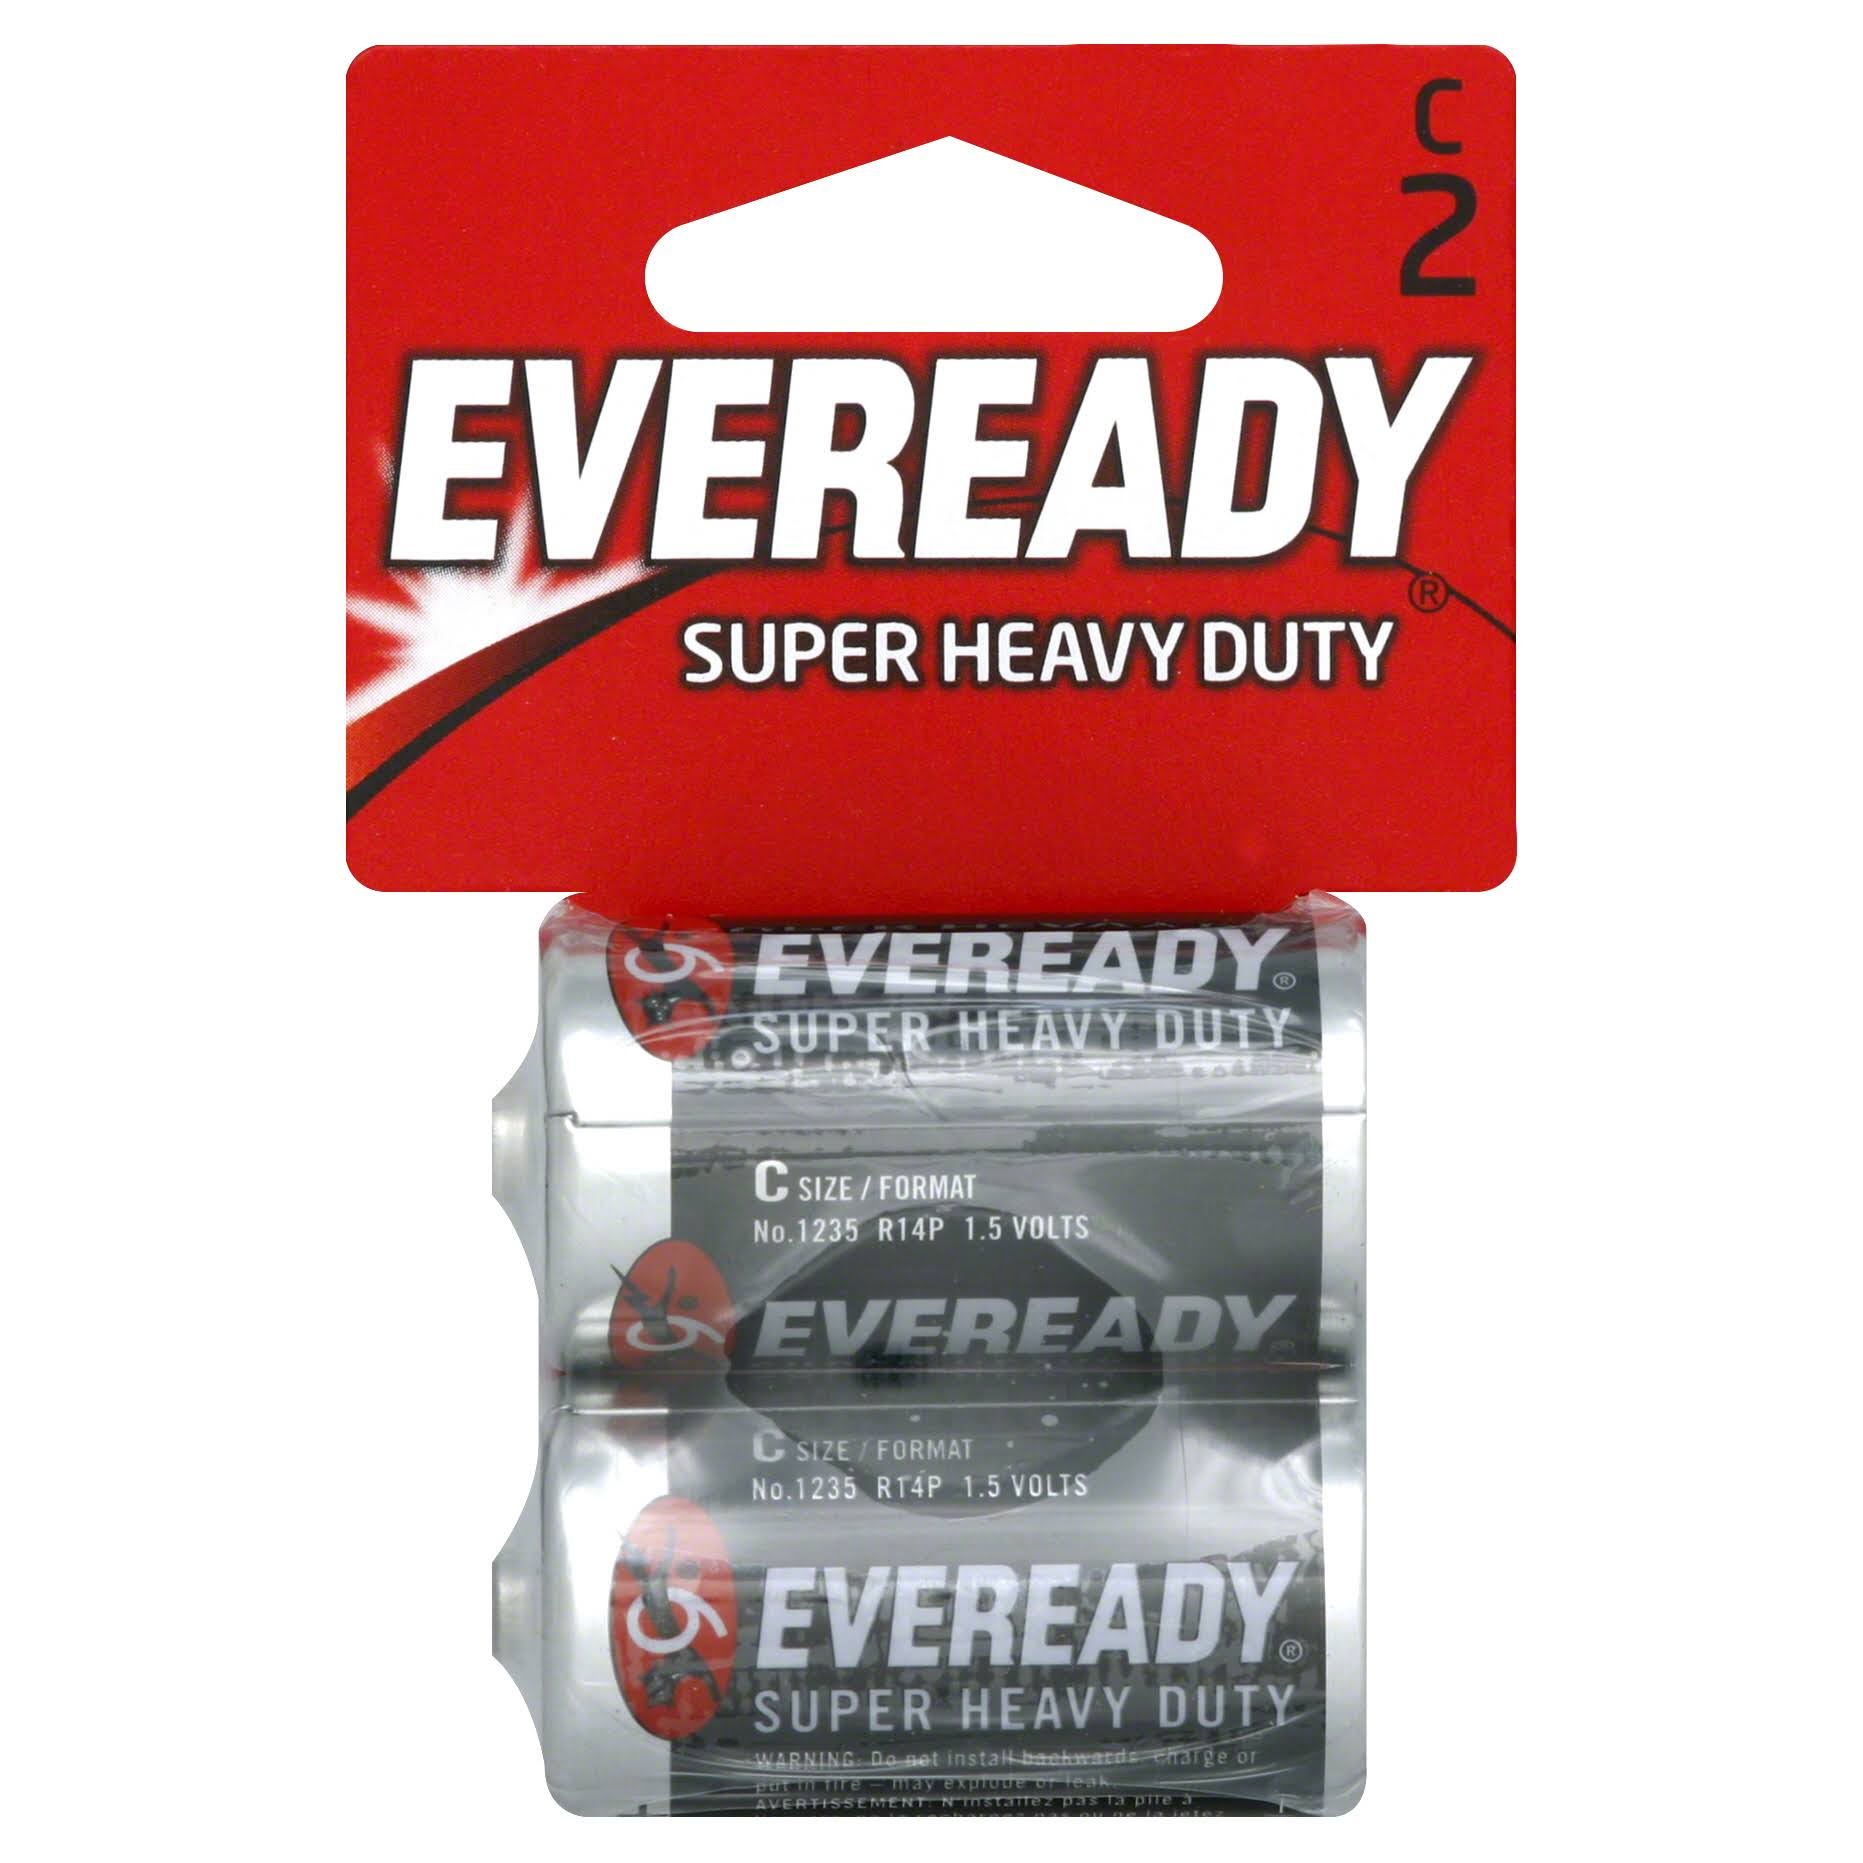 Energizer Eveready Super Heavy Duty Battery - 2 Pack